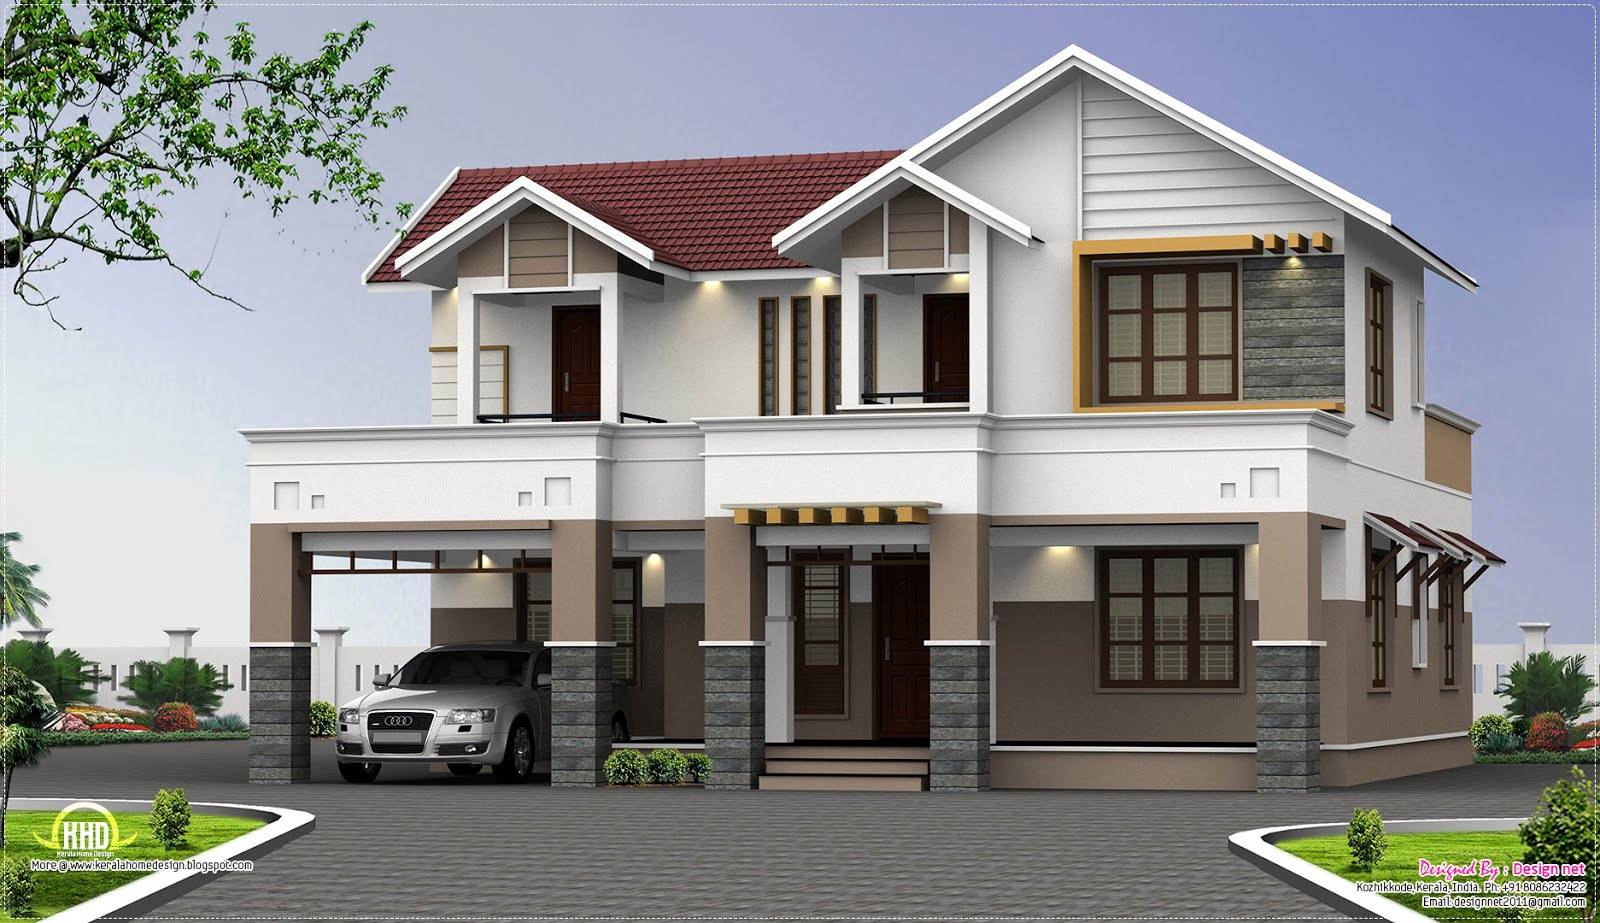 fabulous two story house plans bedroom and living room image collections with